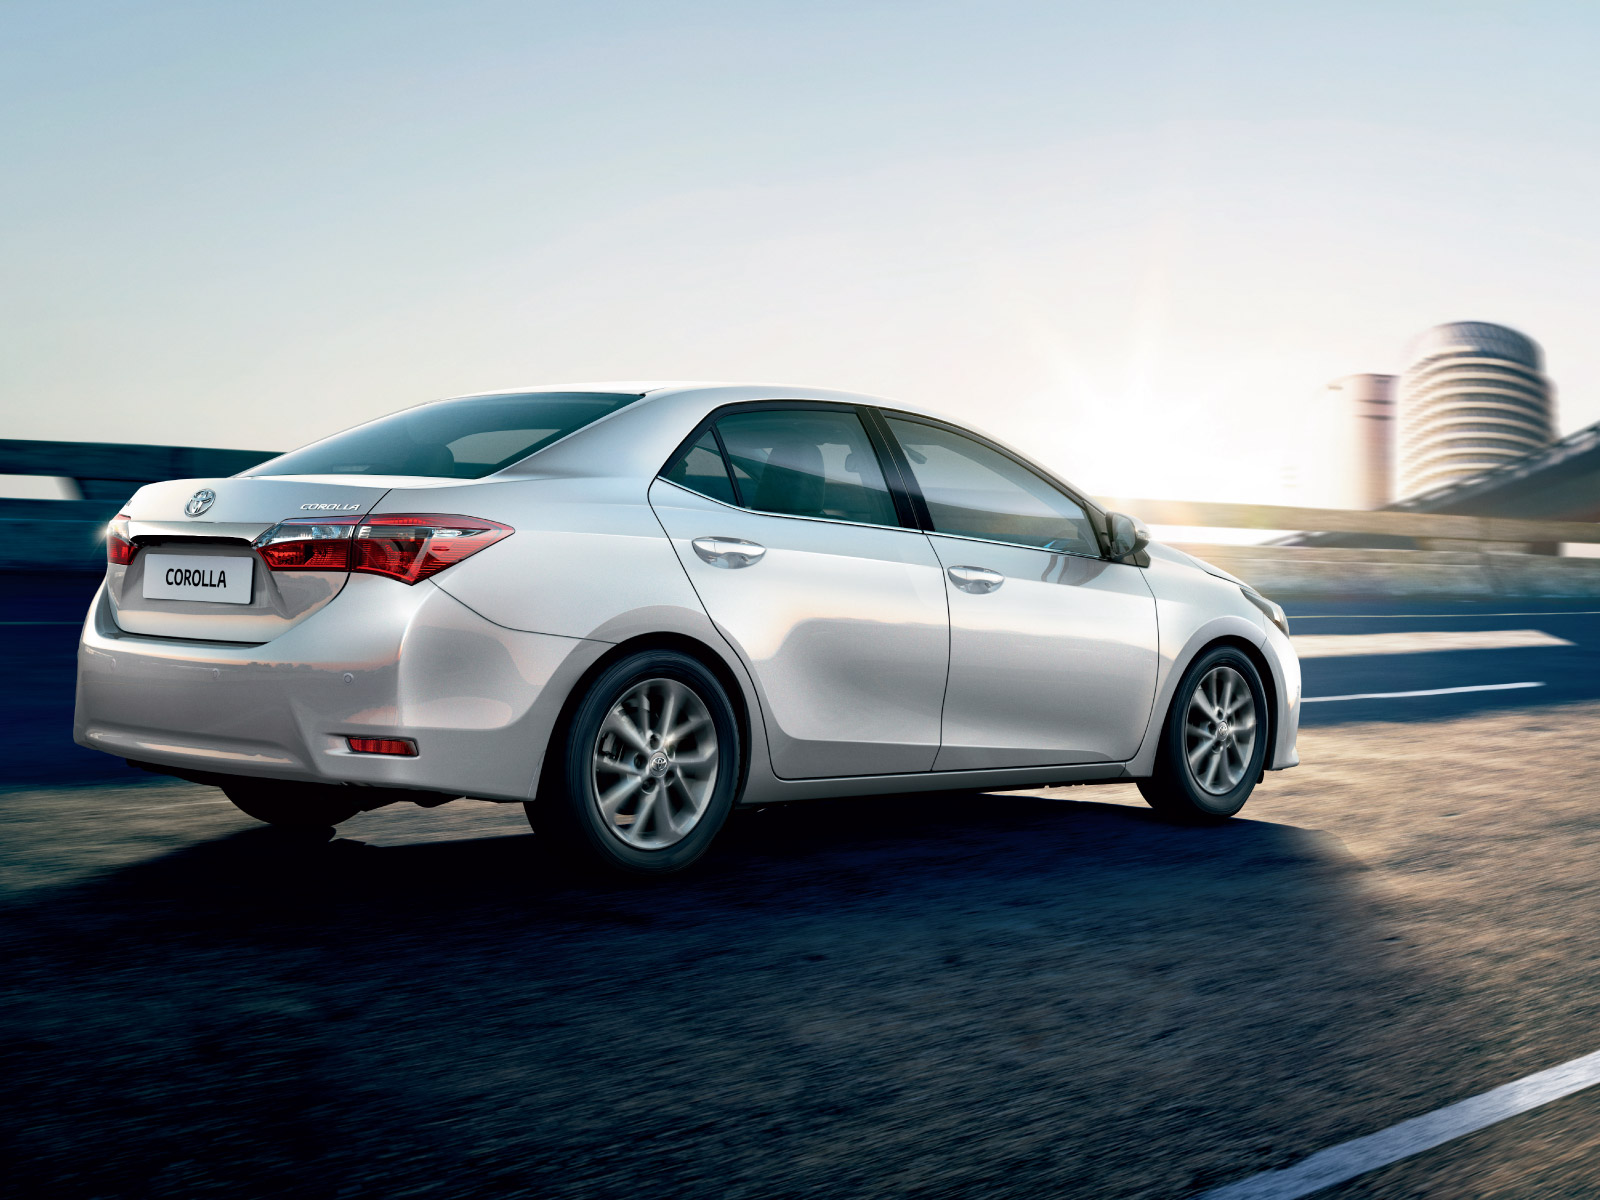 Toyota Corolla 2014 Teased Ahead Of USA Release - Durban South